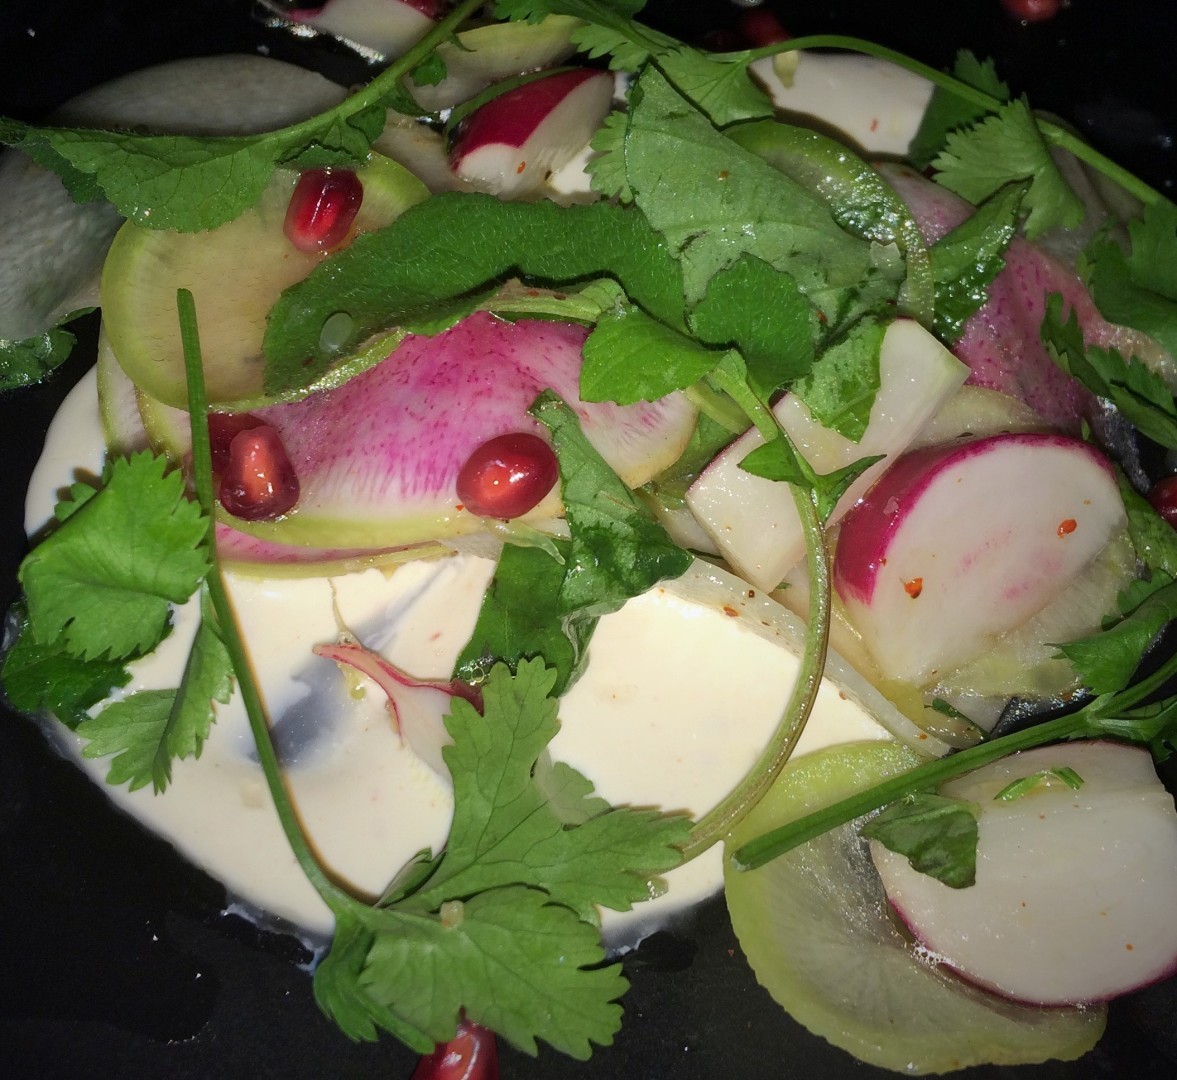 Rábano: four types of radishes over smoked crème fraiche with pomegranate. Capa, Orlando's new Spanish steakhouse